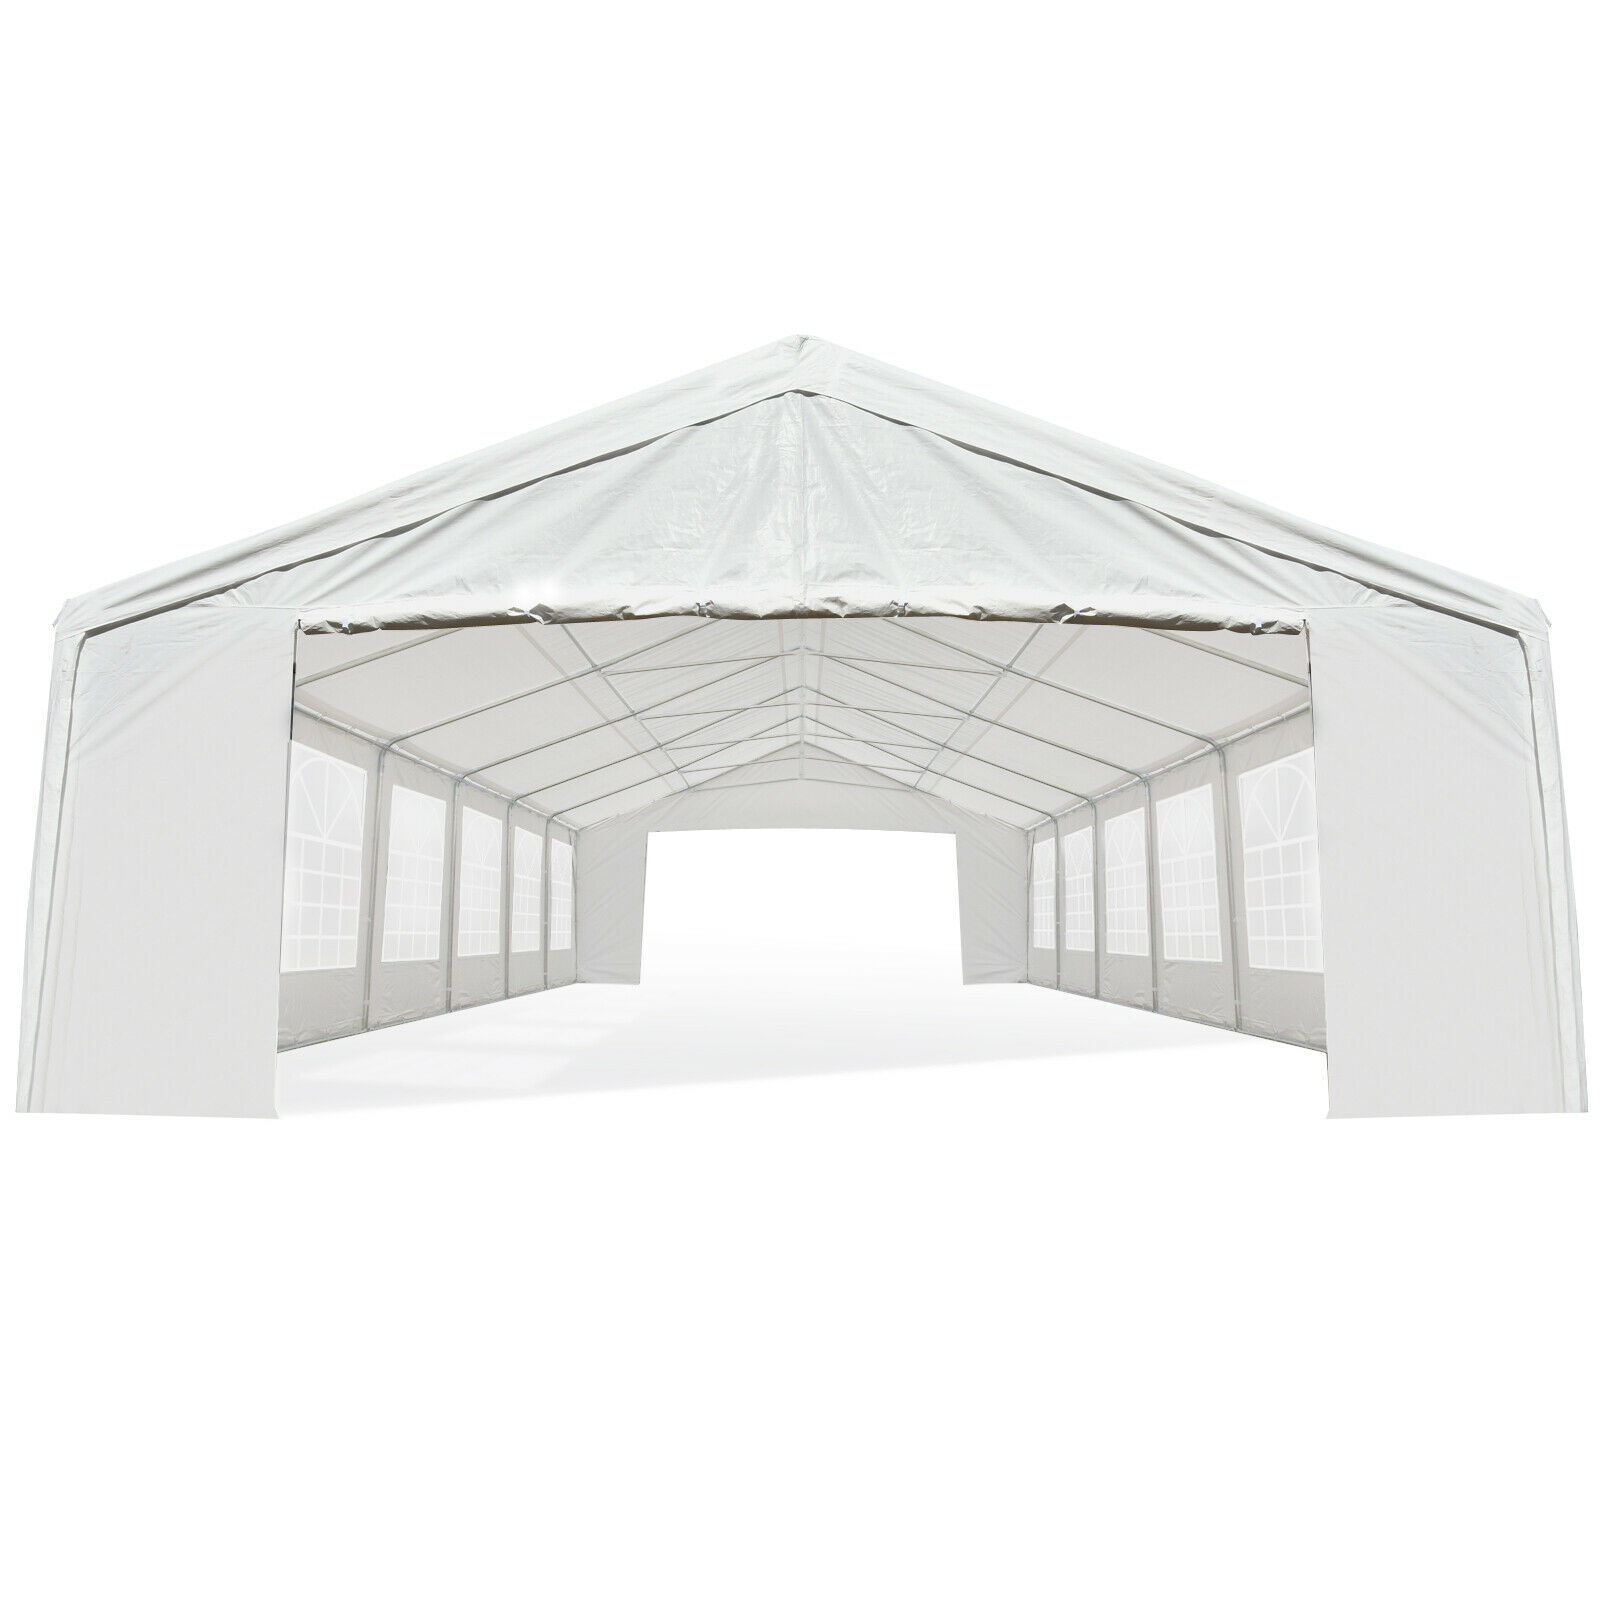 Picture of Outdoor Tent 40' x 20' - White